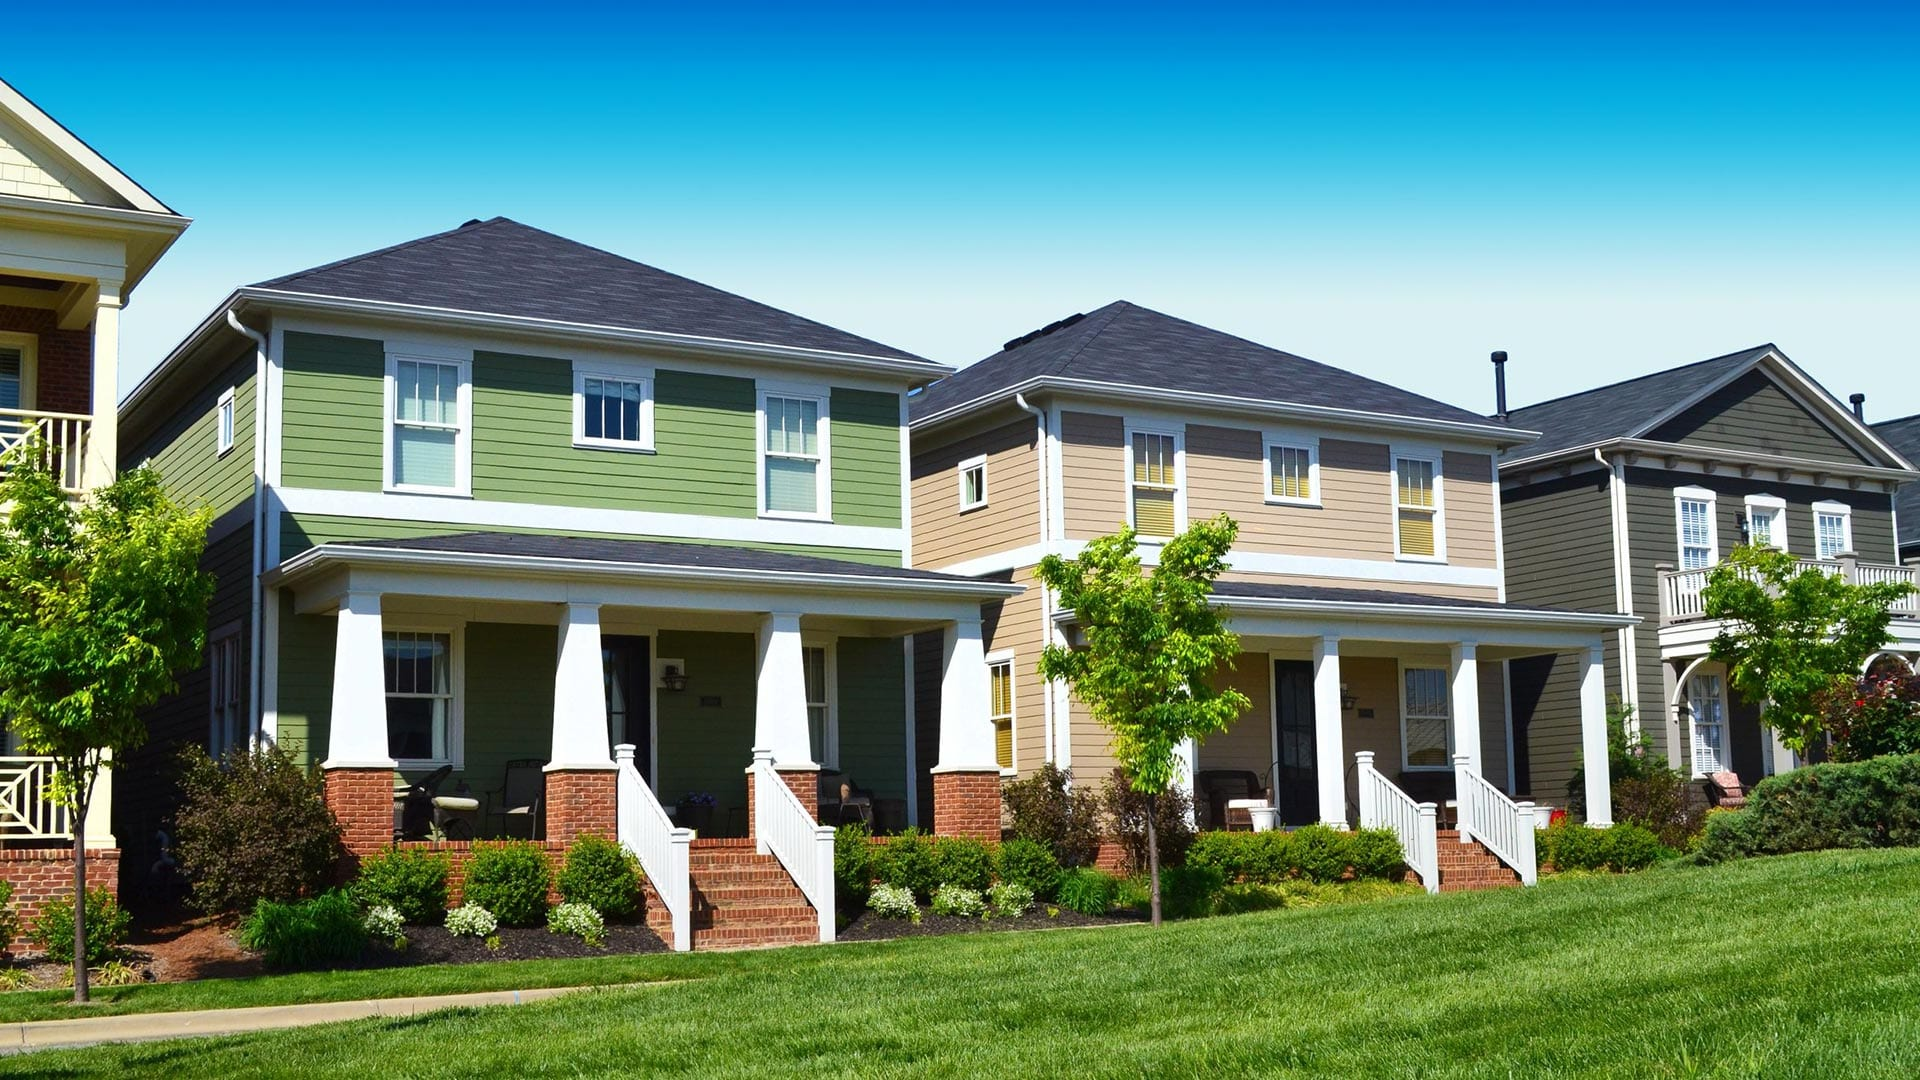 Home inspection checklist: What to expect on inspection day